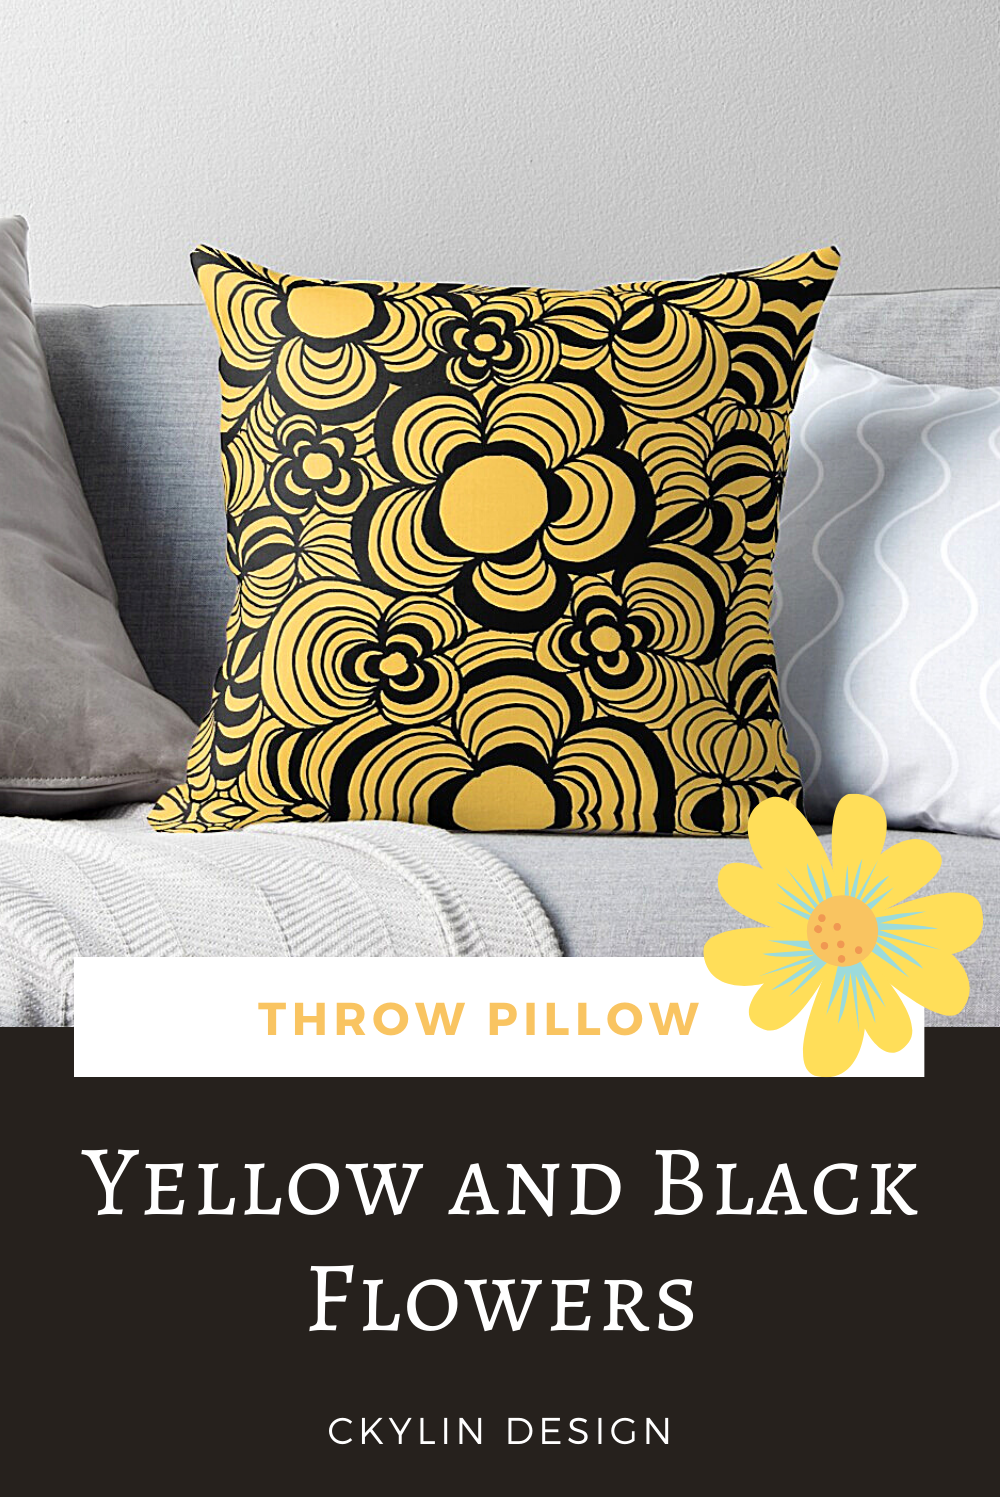 Yellow and black floral print originally made in just white and black. But, with some editing, voila. These patterns are a lot of fun to make! Might be that this color floral pattern is on the bold side. Some flowery designs for summer maybe?  #interiordesign #interior #homedesignideas #flowerpillowcase #interiordesigner #couchdecor #cushion #interiorinspo #interiorstyle #interiorinspiration #interiordecorating #pillows #pillowdesign #throwpillow #sofapillow #flowerdesigns